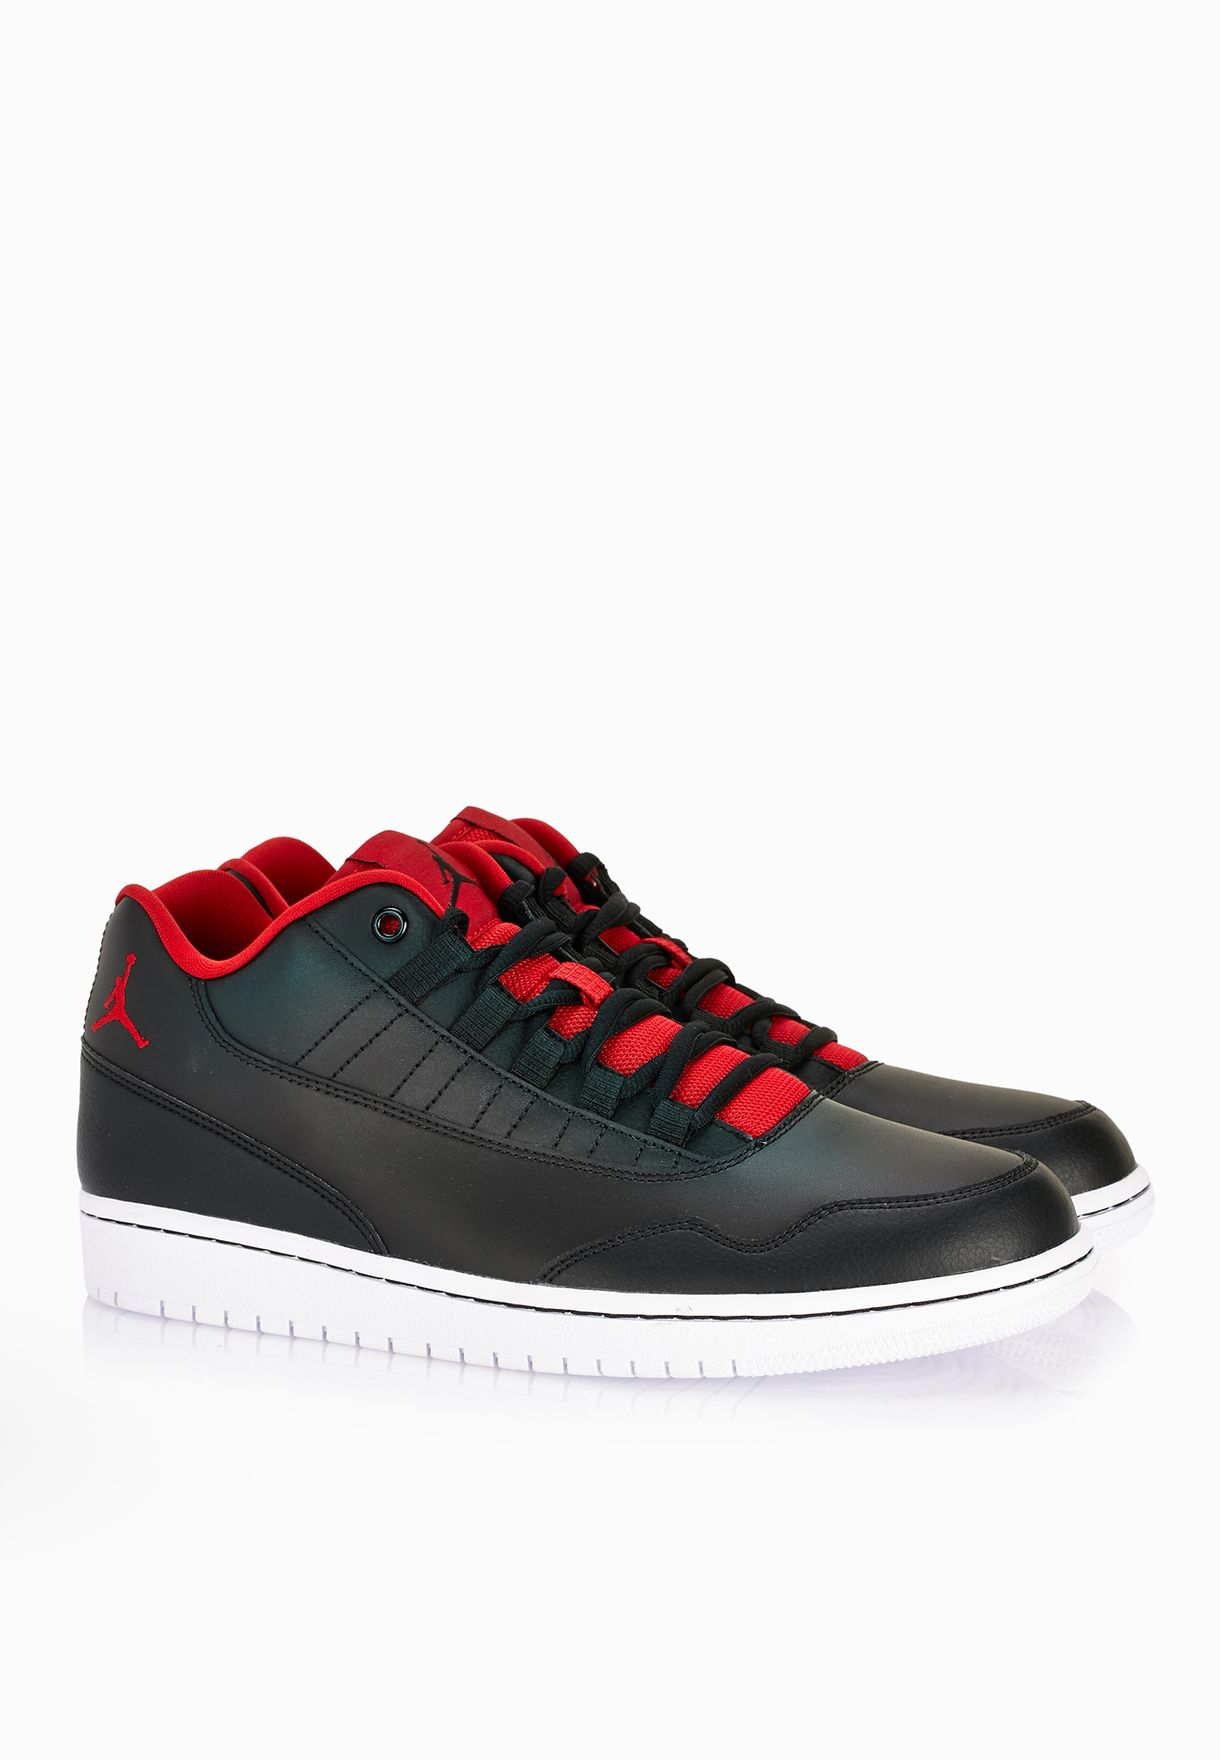 7d82dd6b231 Shop Nike black Jordan Executive Low 833913-001 for Men in Qatar ...